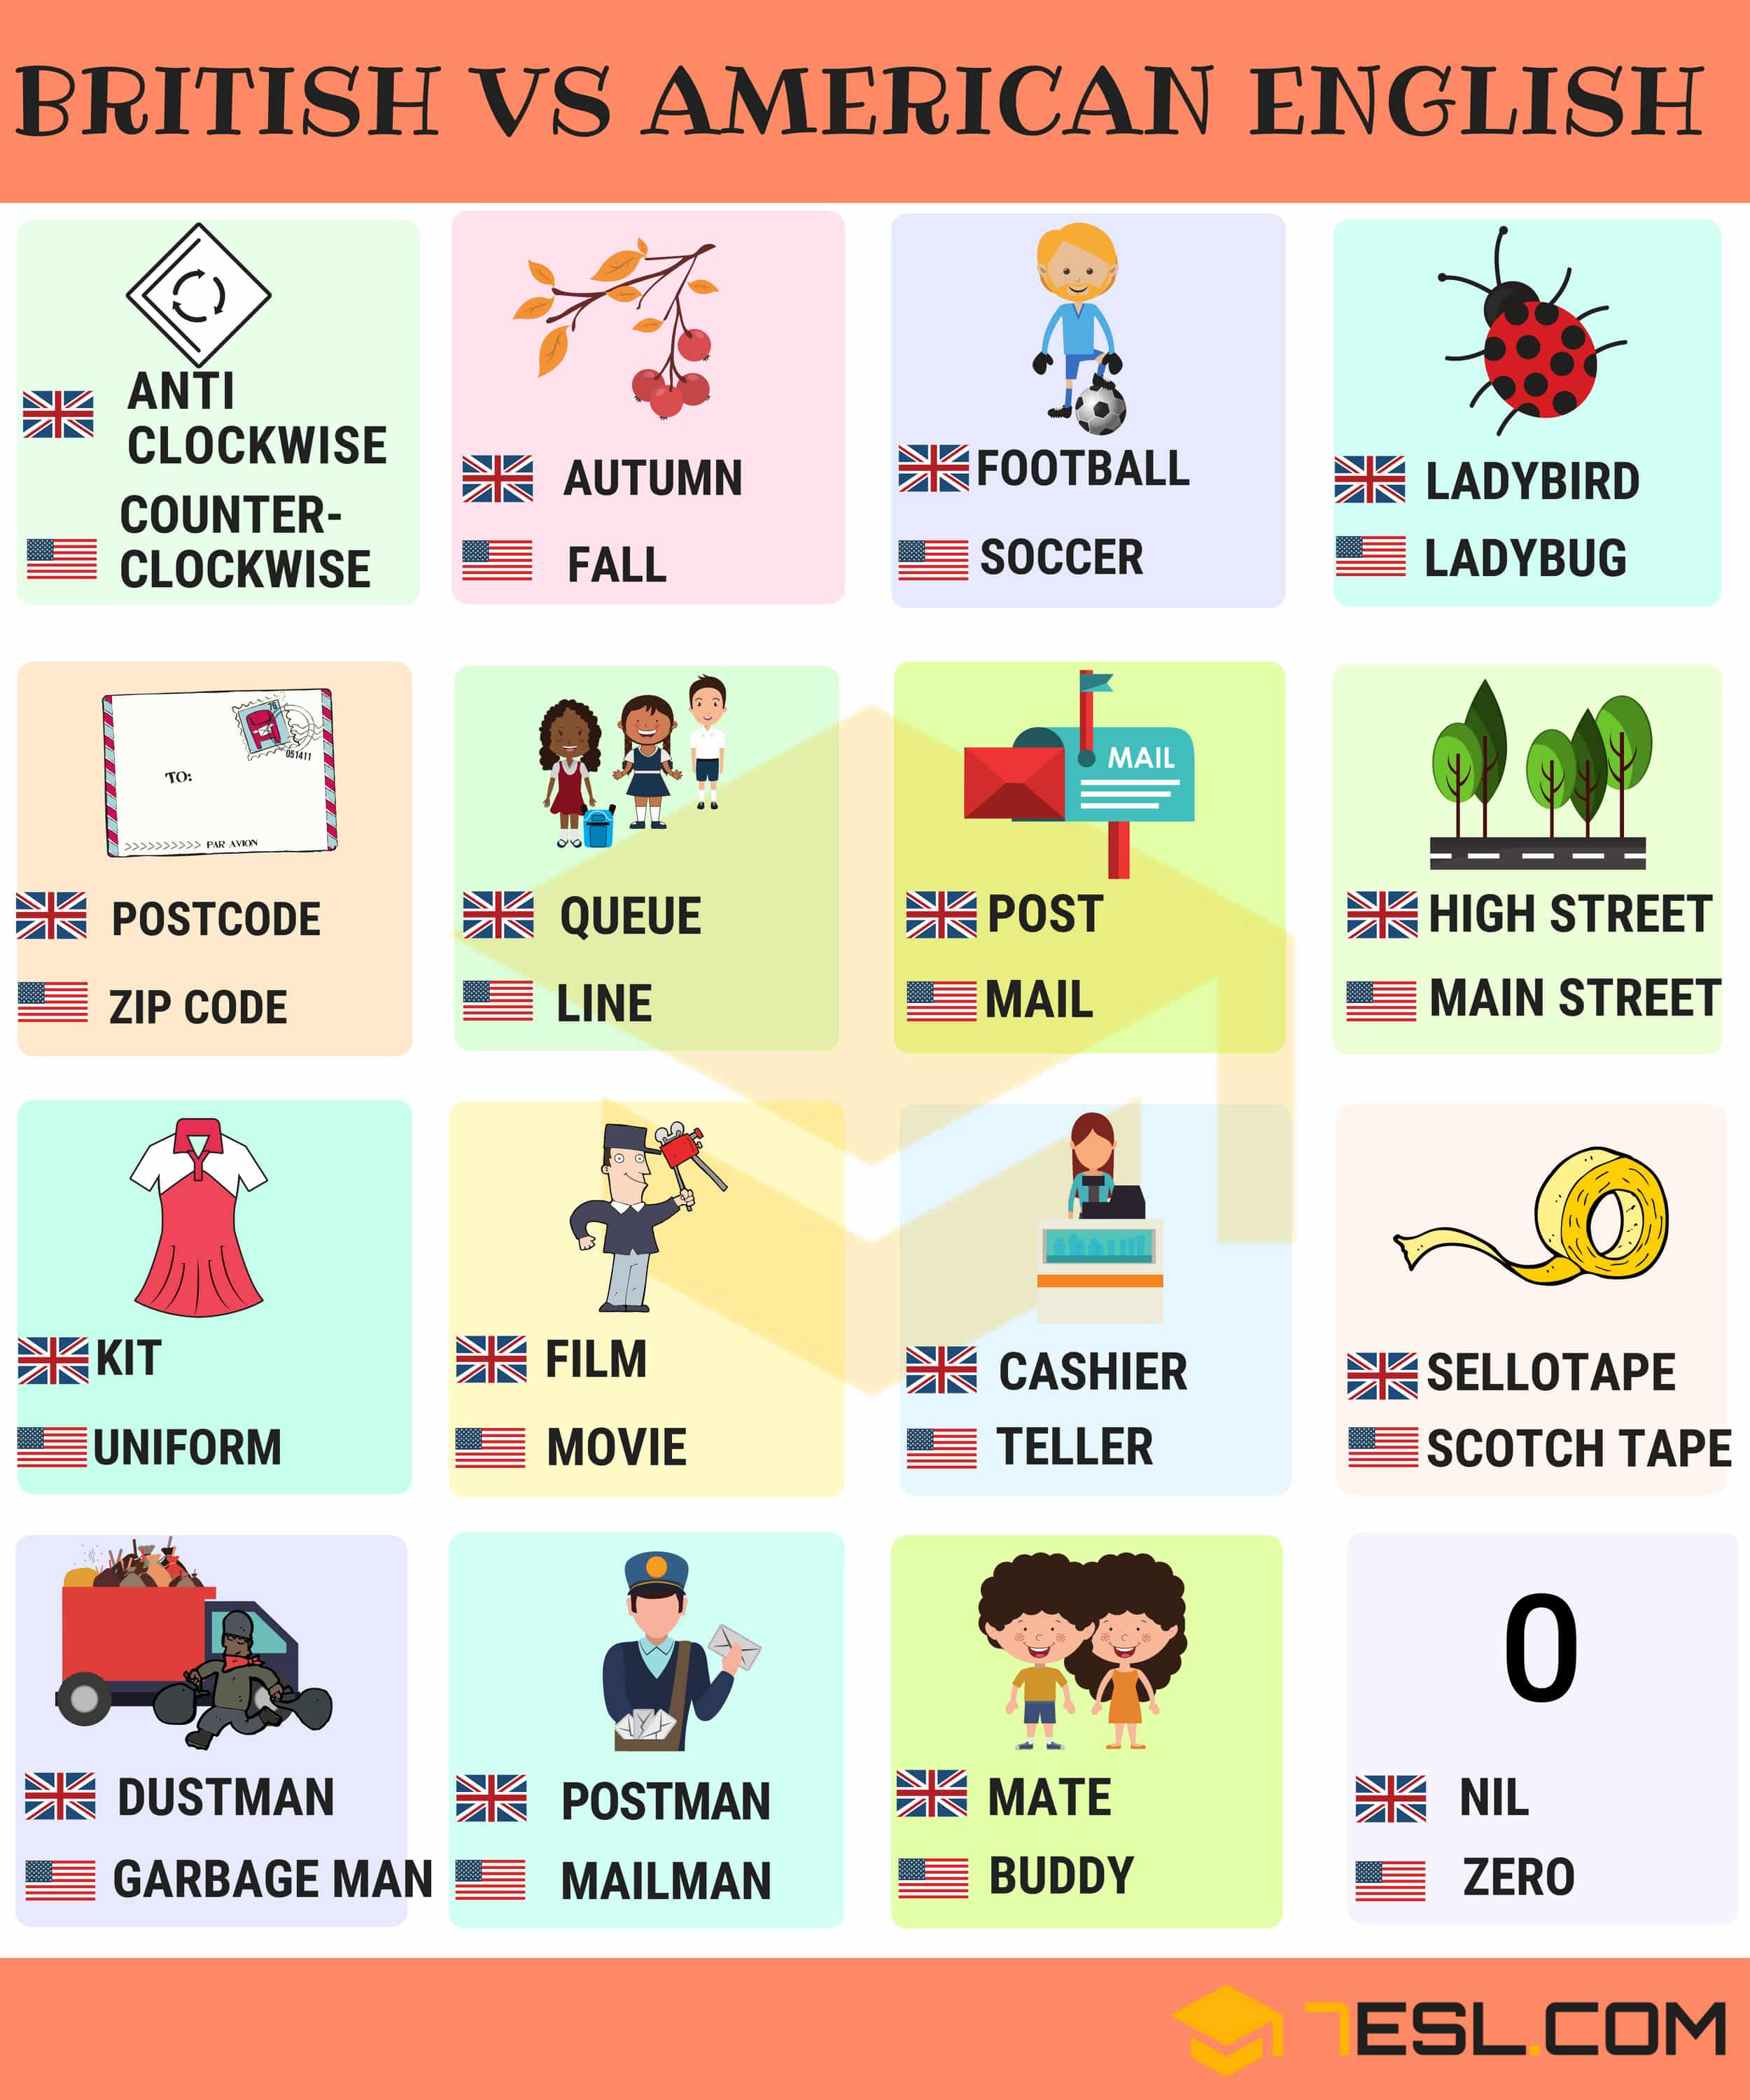 British and American English: 200+ Differences Illustrated 7